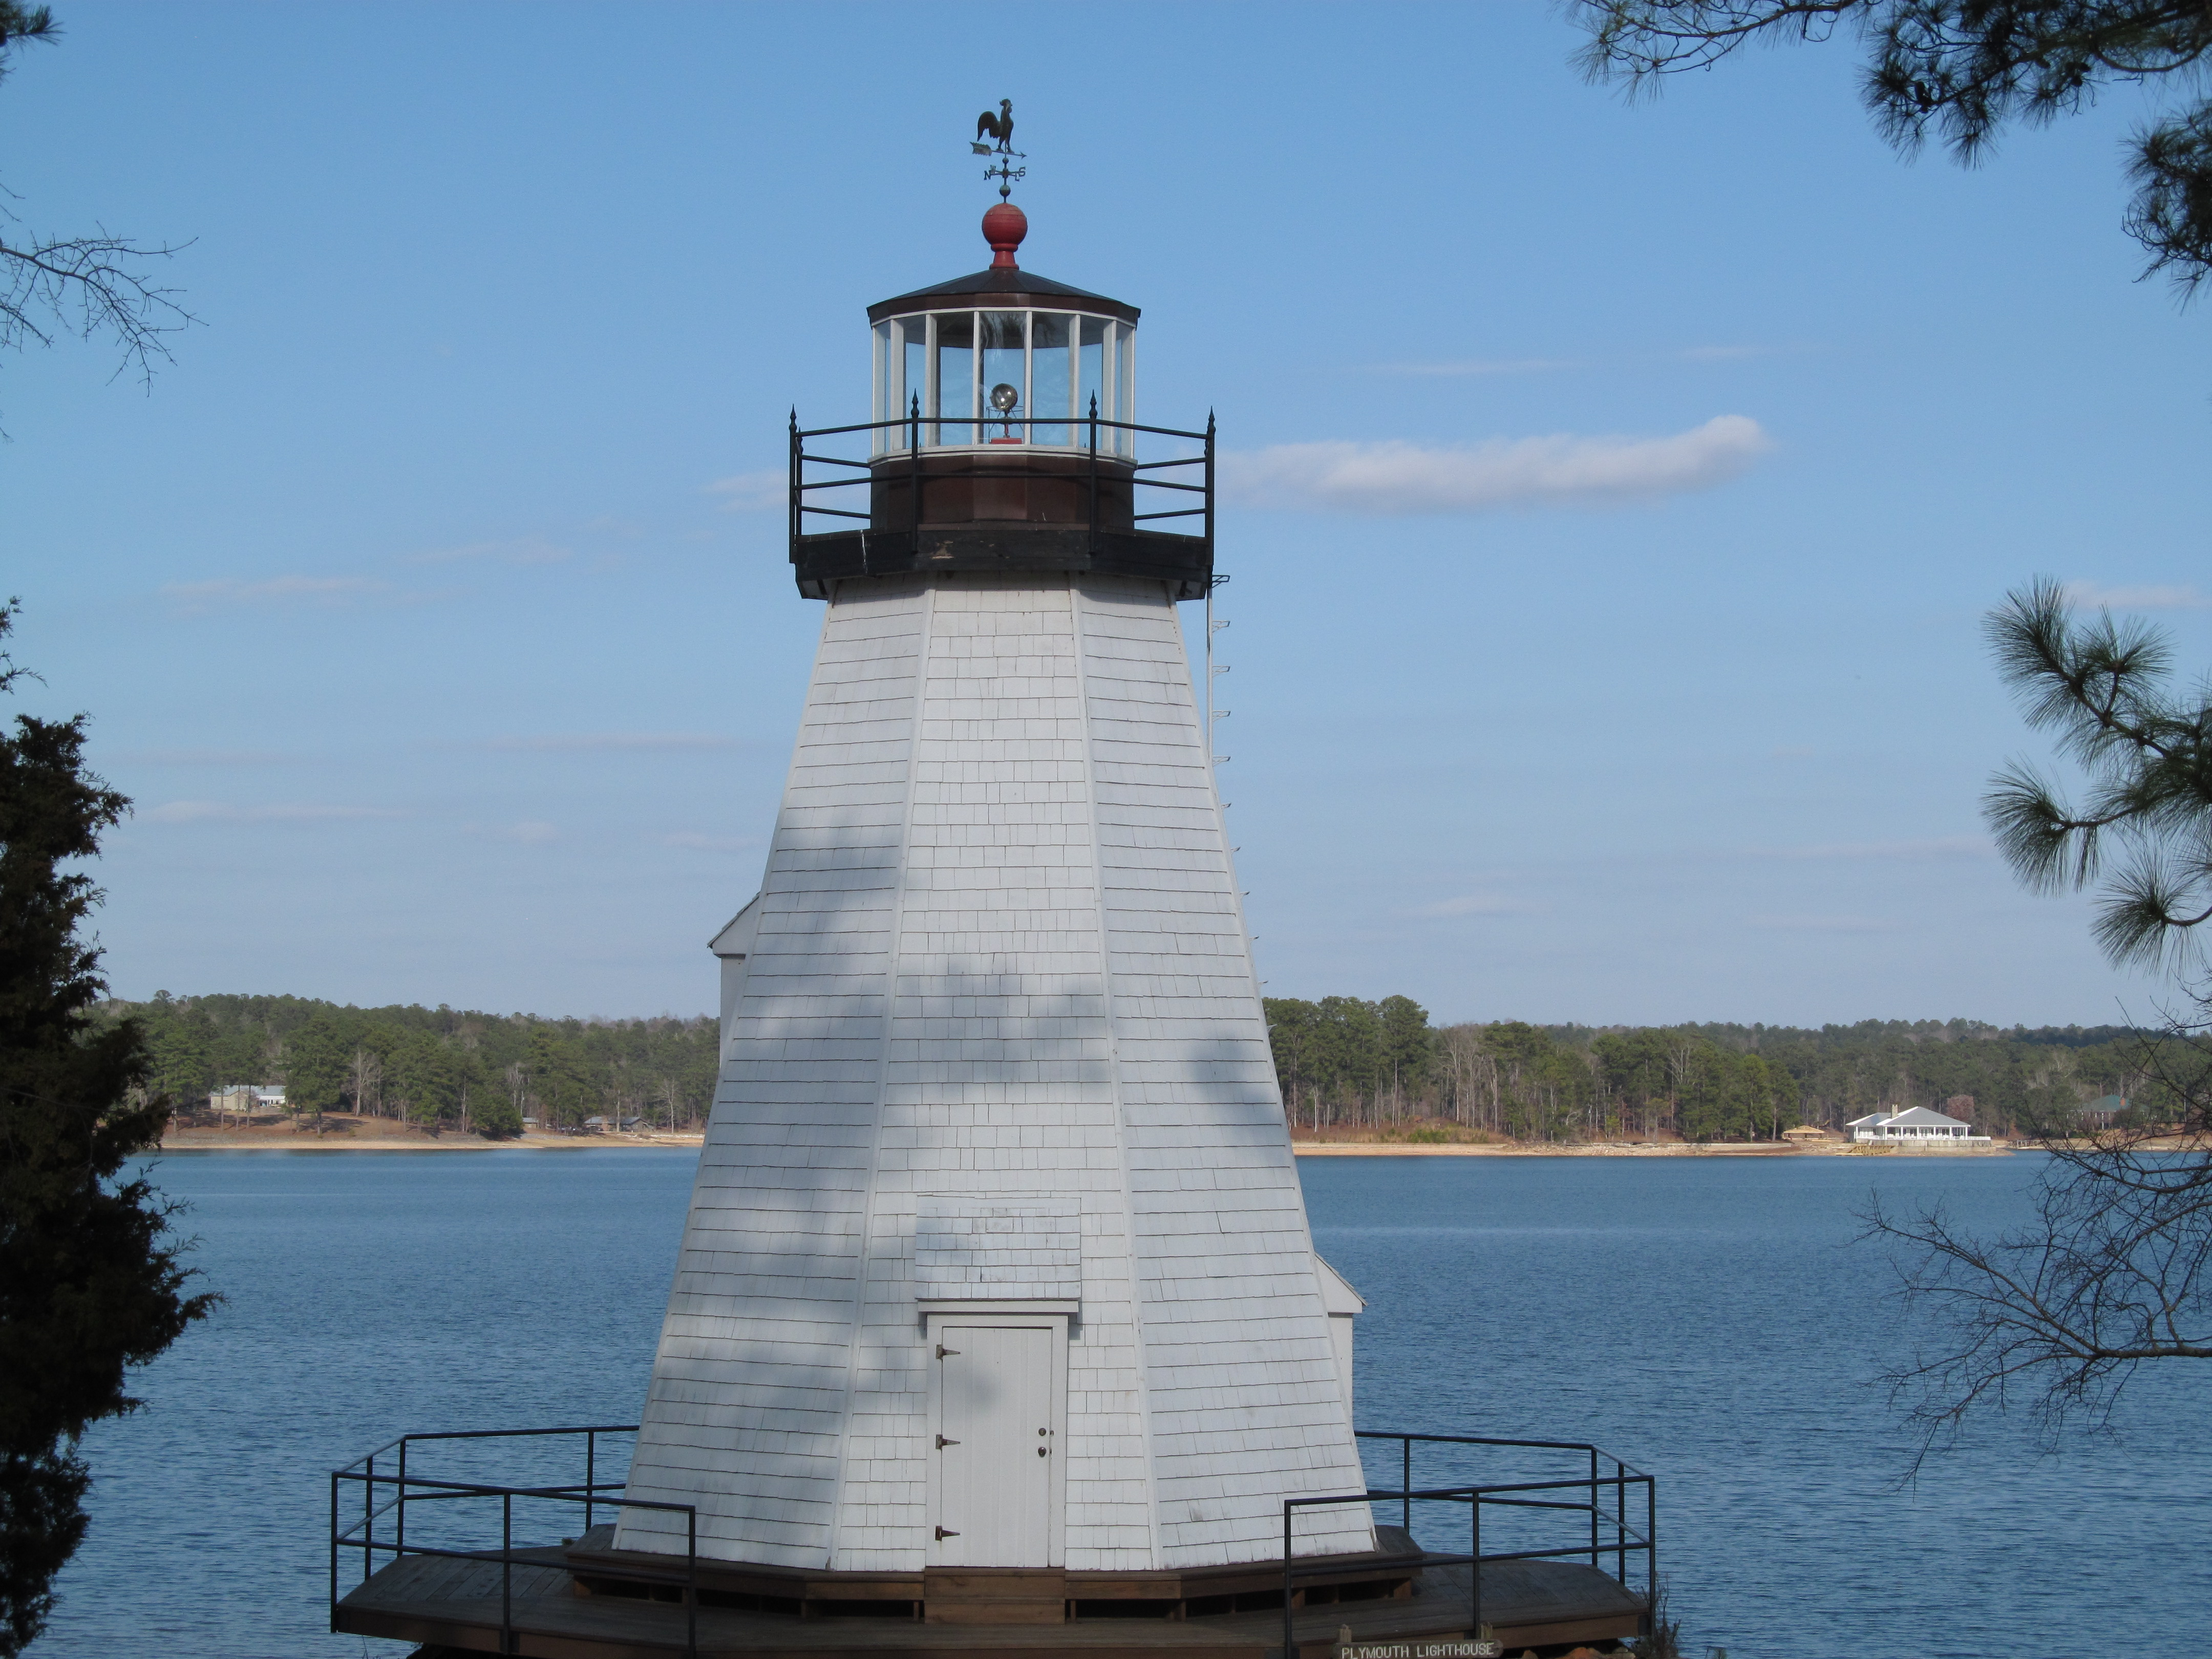 File:Children's Harbor near Lake Martin 5.JPG - Wikimedia ...